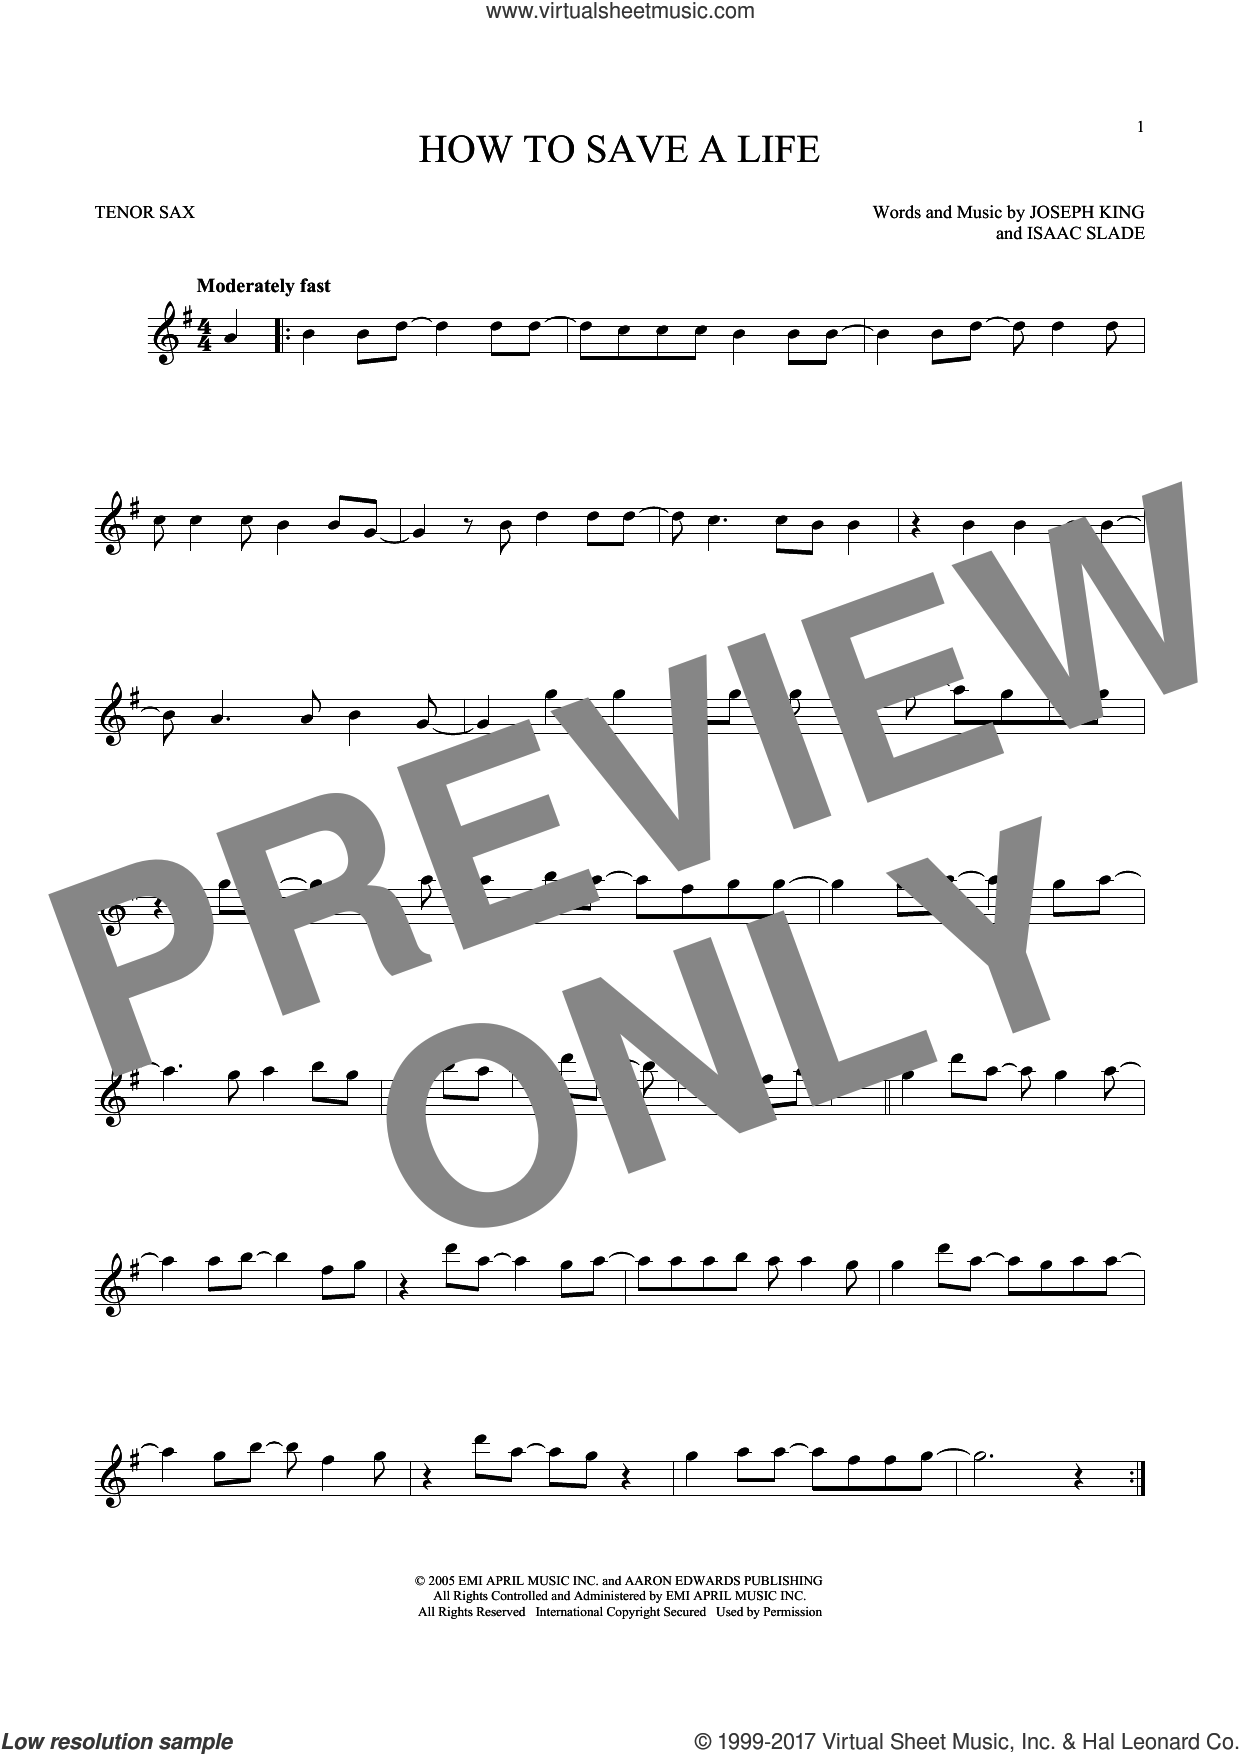 How To Save A Life sheet music for tenor saxophone solo ( Sax) by Joseph King, The Fray and Isaac Slade. Score Image Preview.